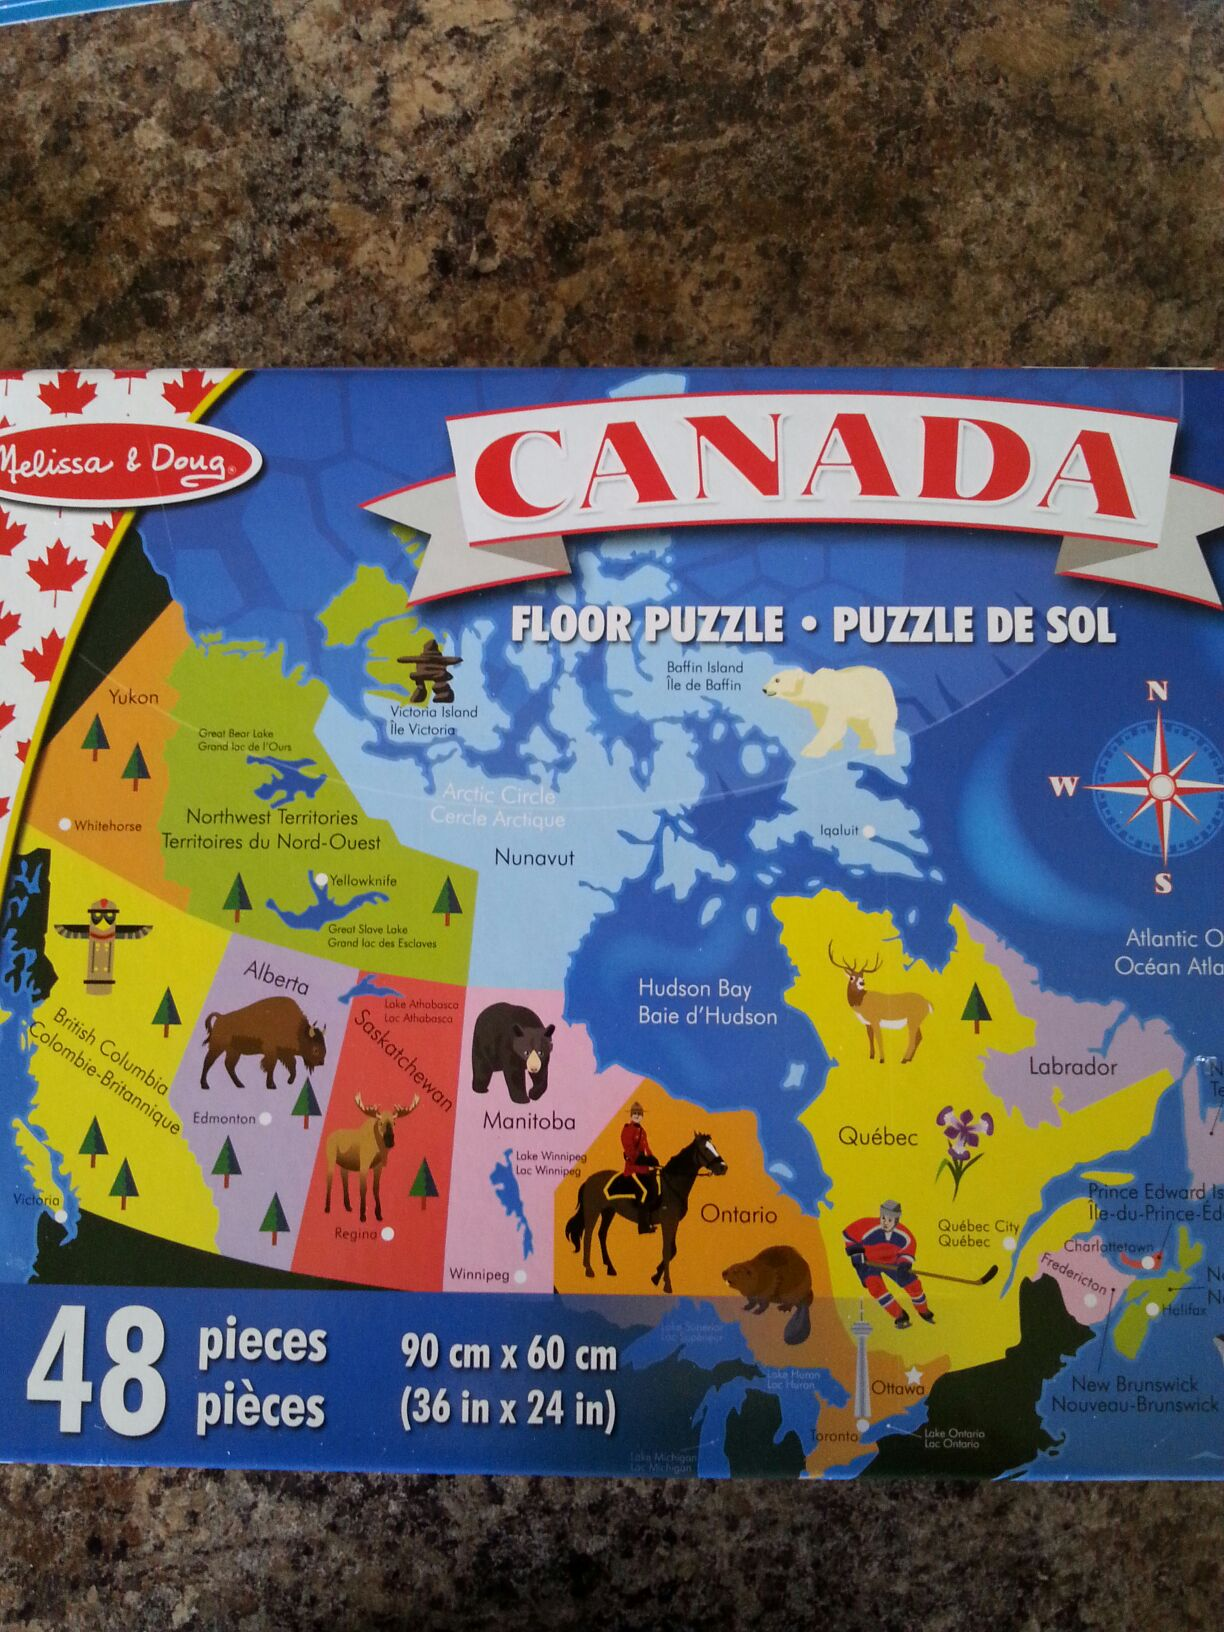 Canada Floor Map Puzzle Board Game front image (front cover)